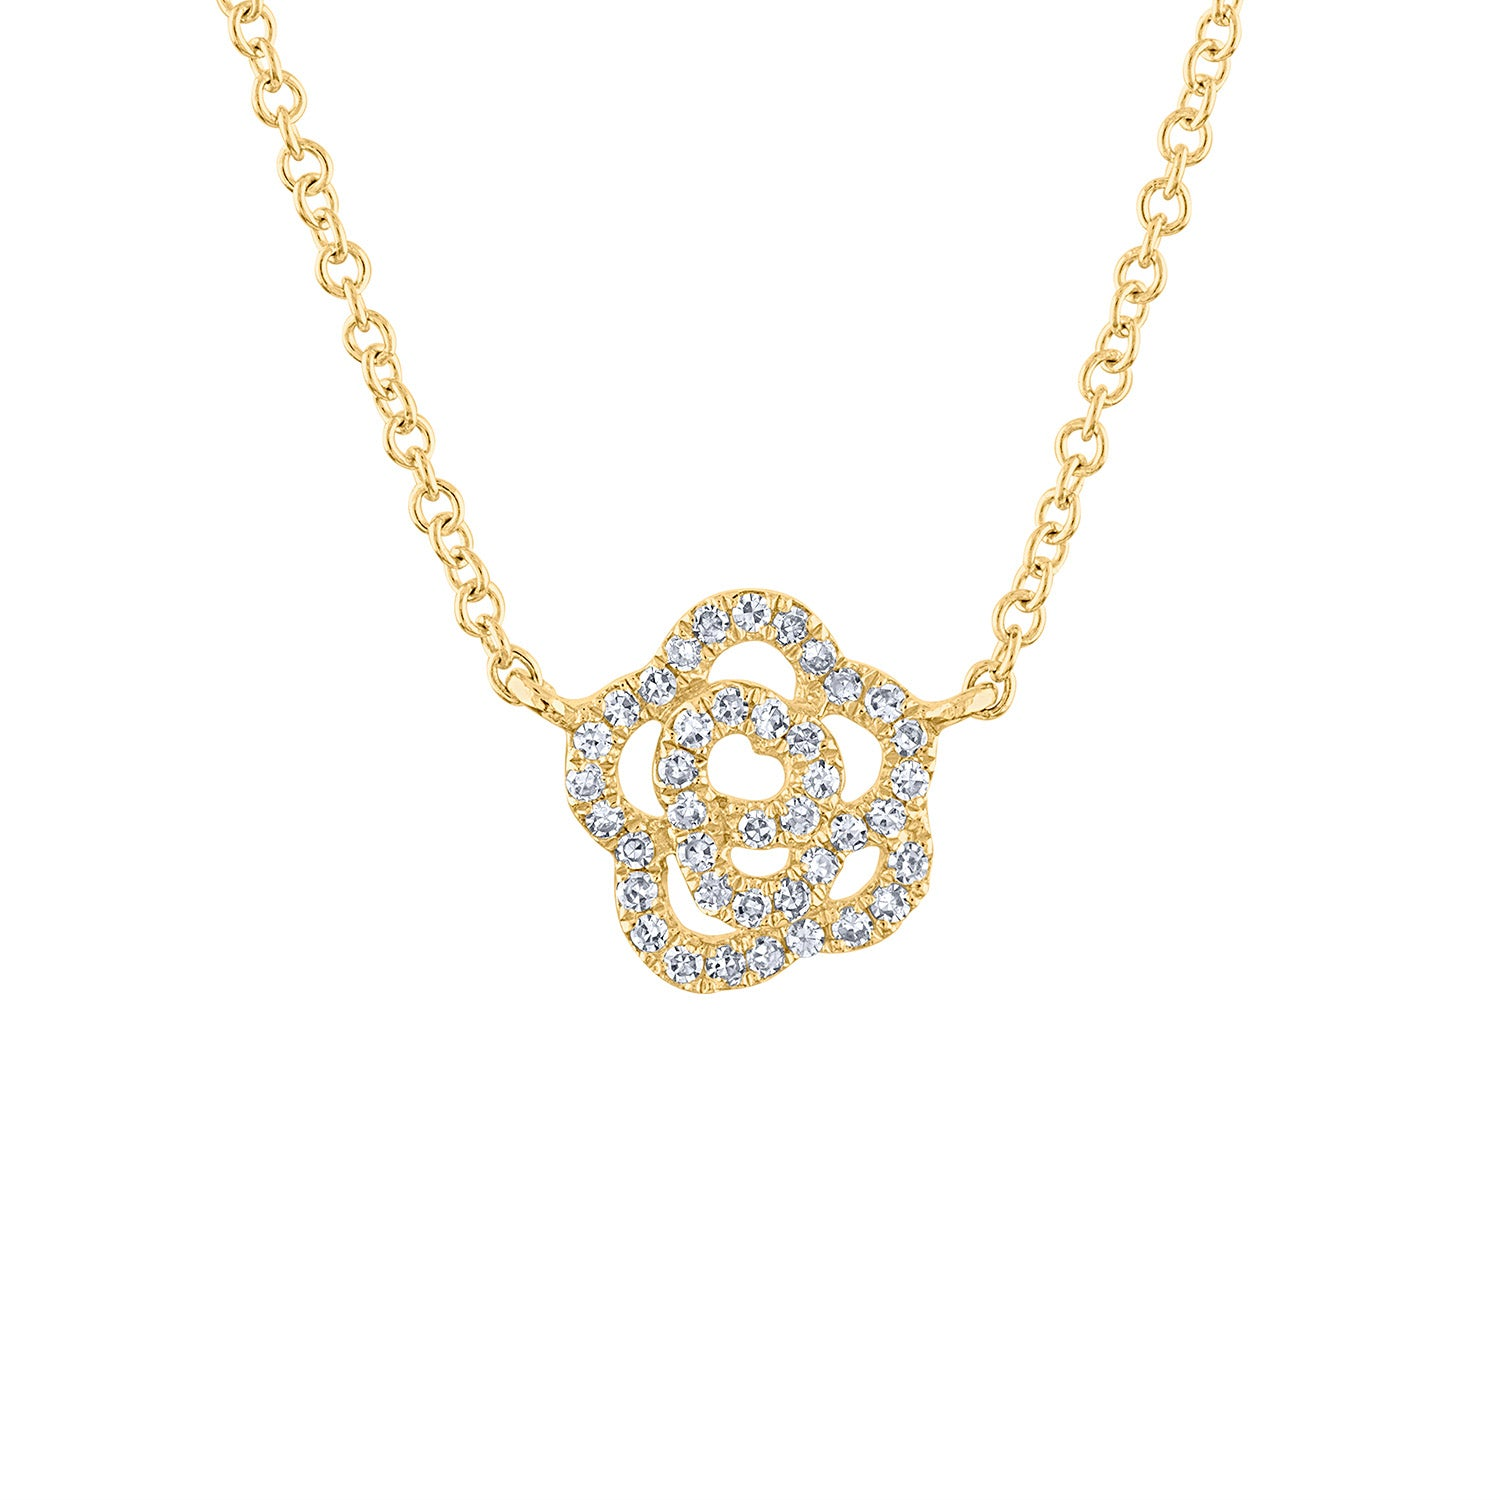 14KT GOLD DIAMOND FLOWER NECKLACE